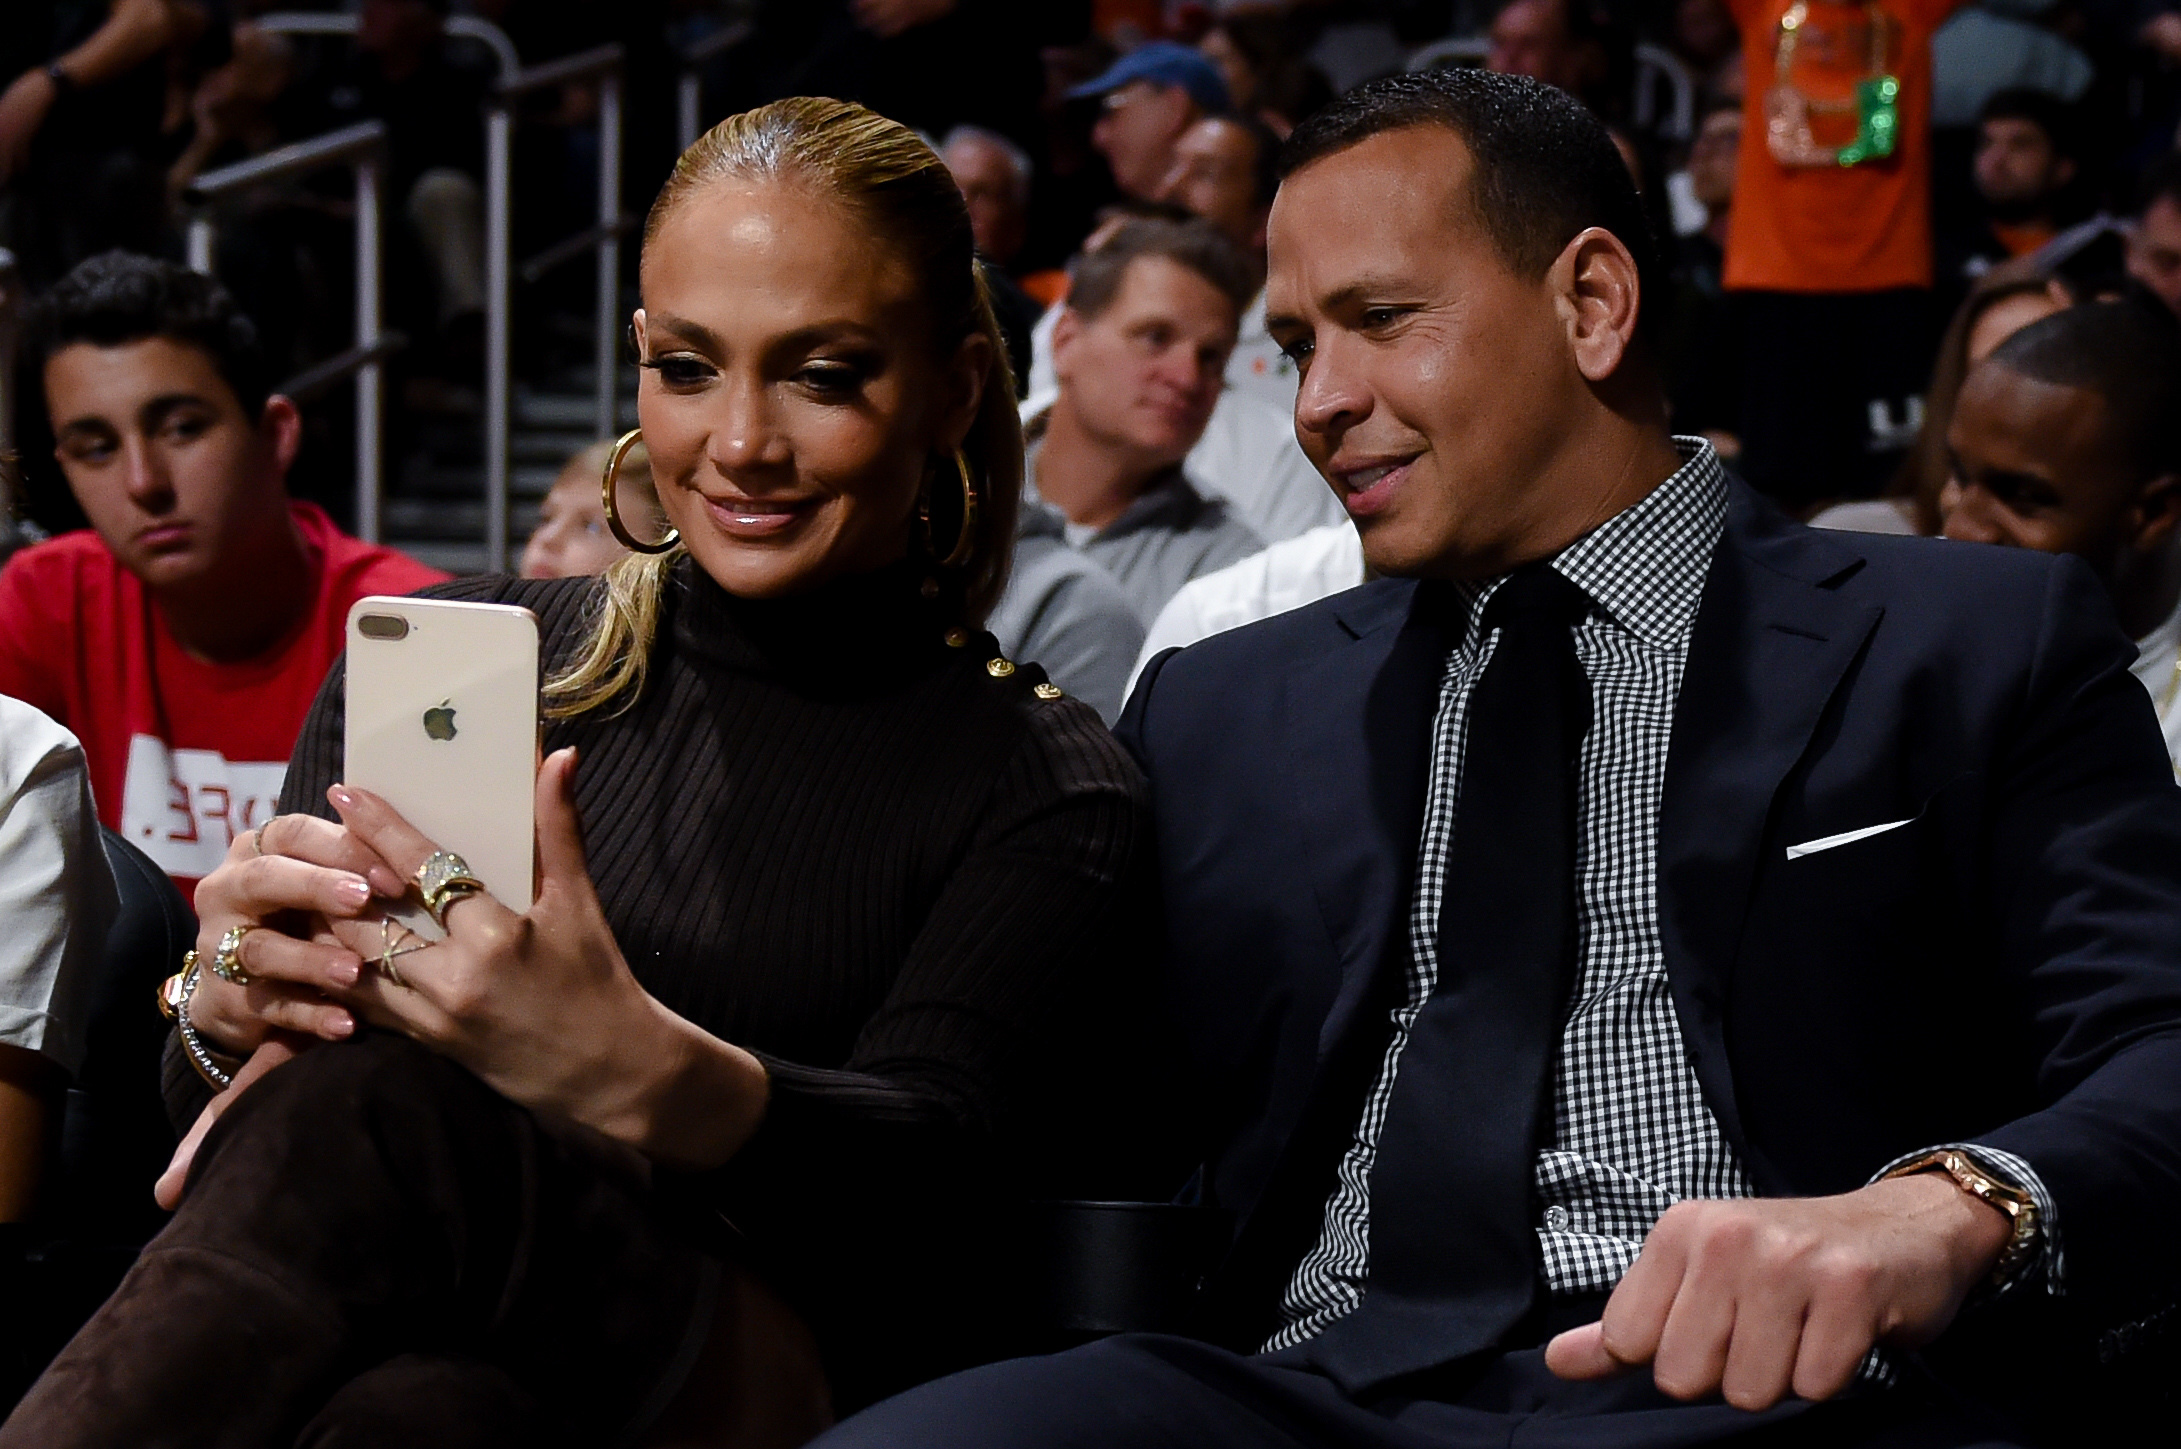 Thursday's Mashup: PawSox to celebrate Alex Rodriguez, Jennifer Lopez engagement with Red Sox-themed party